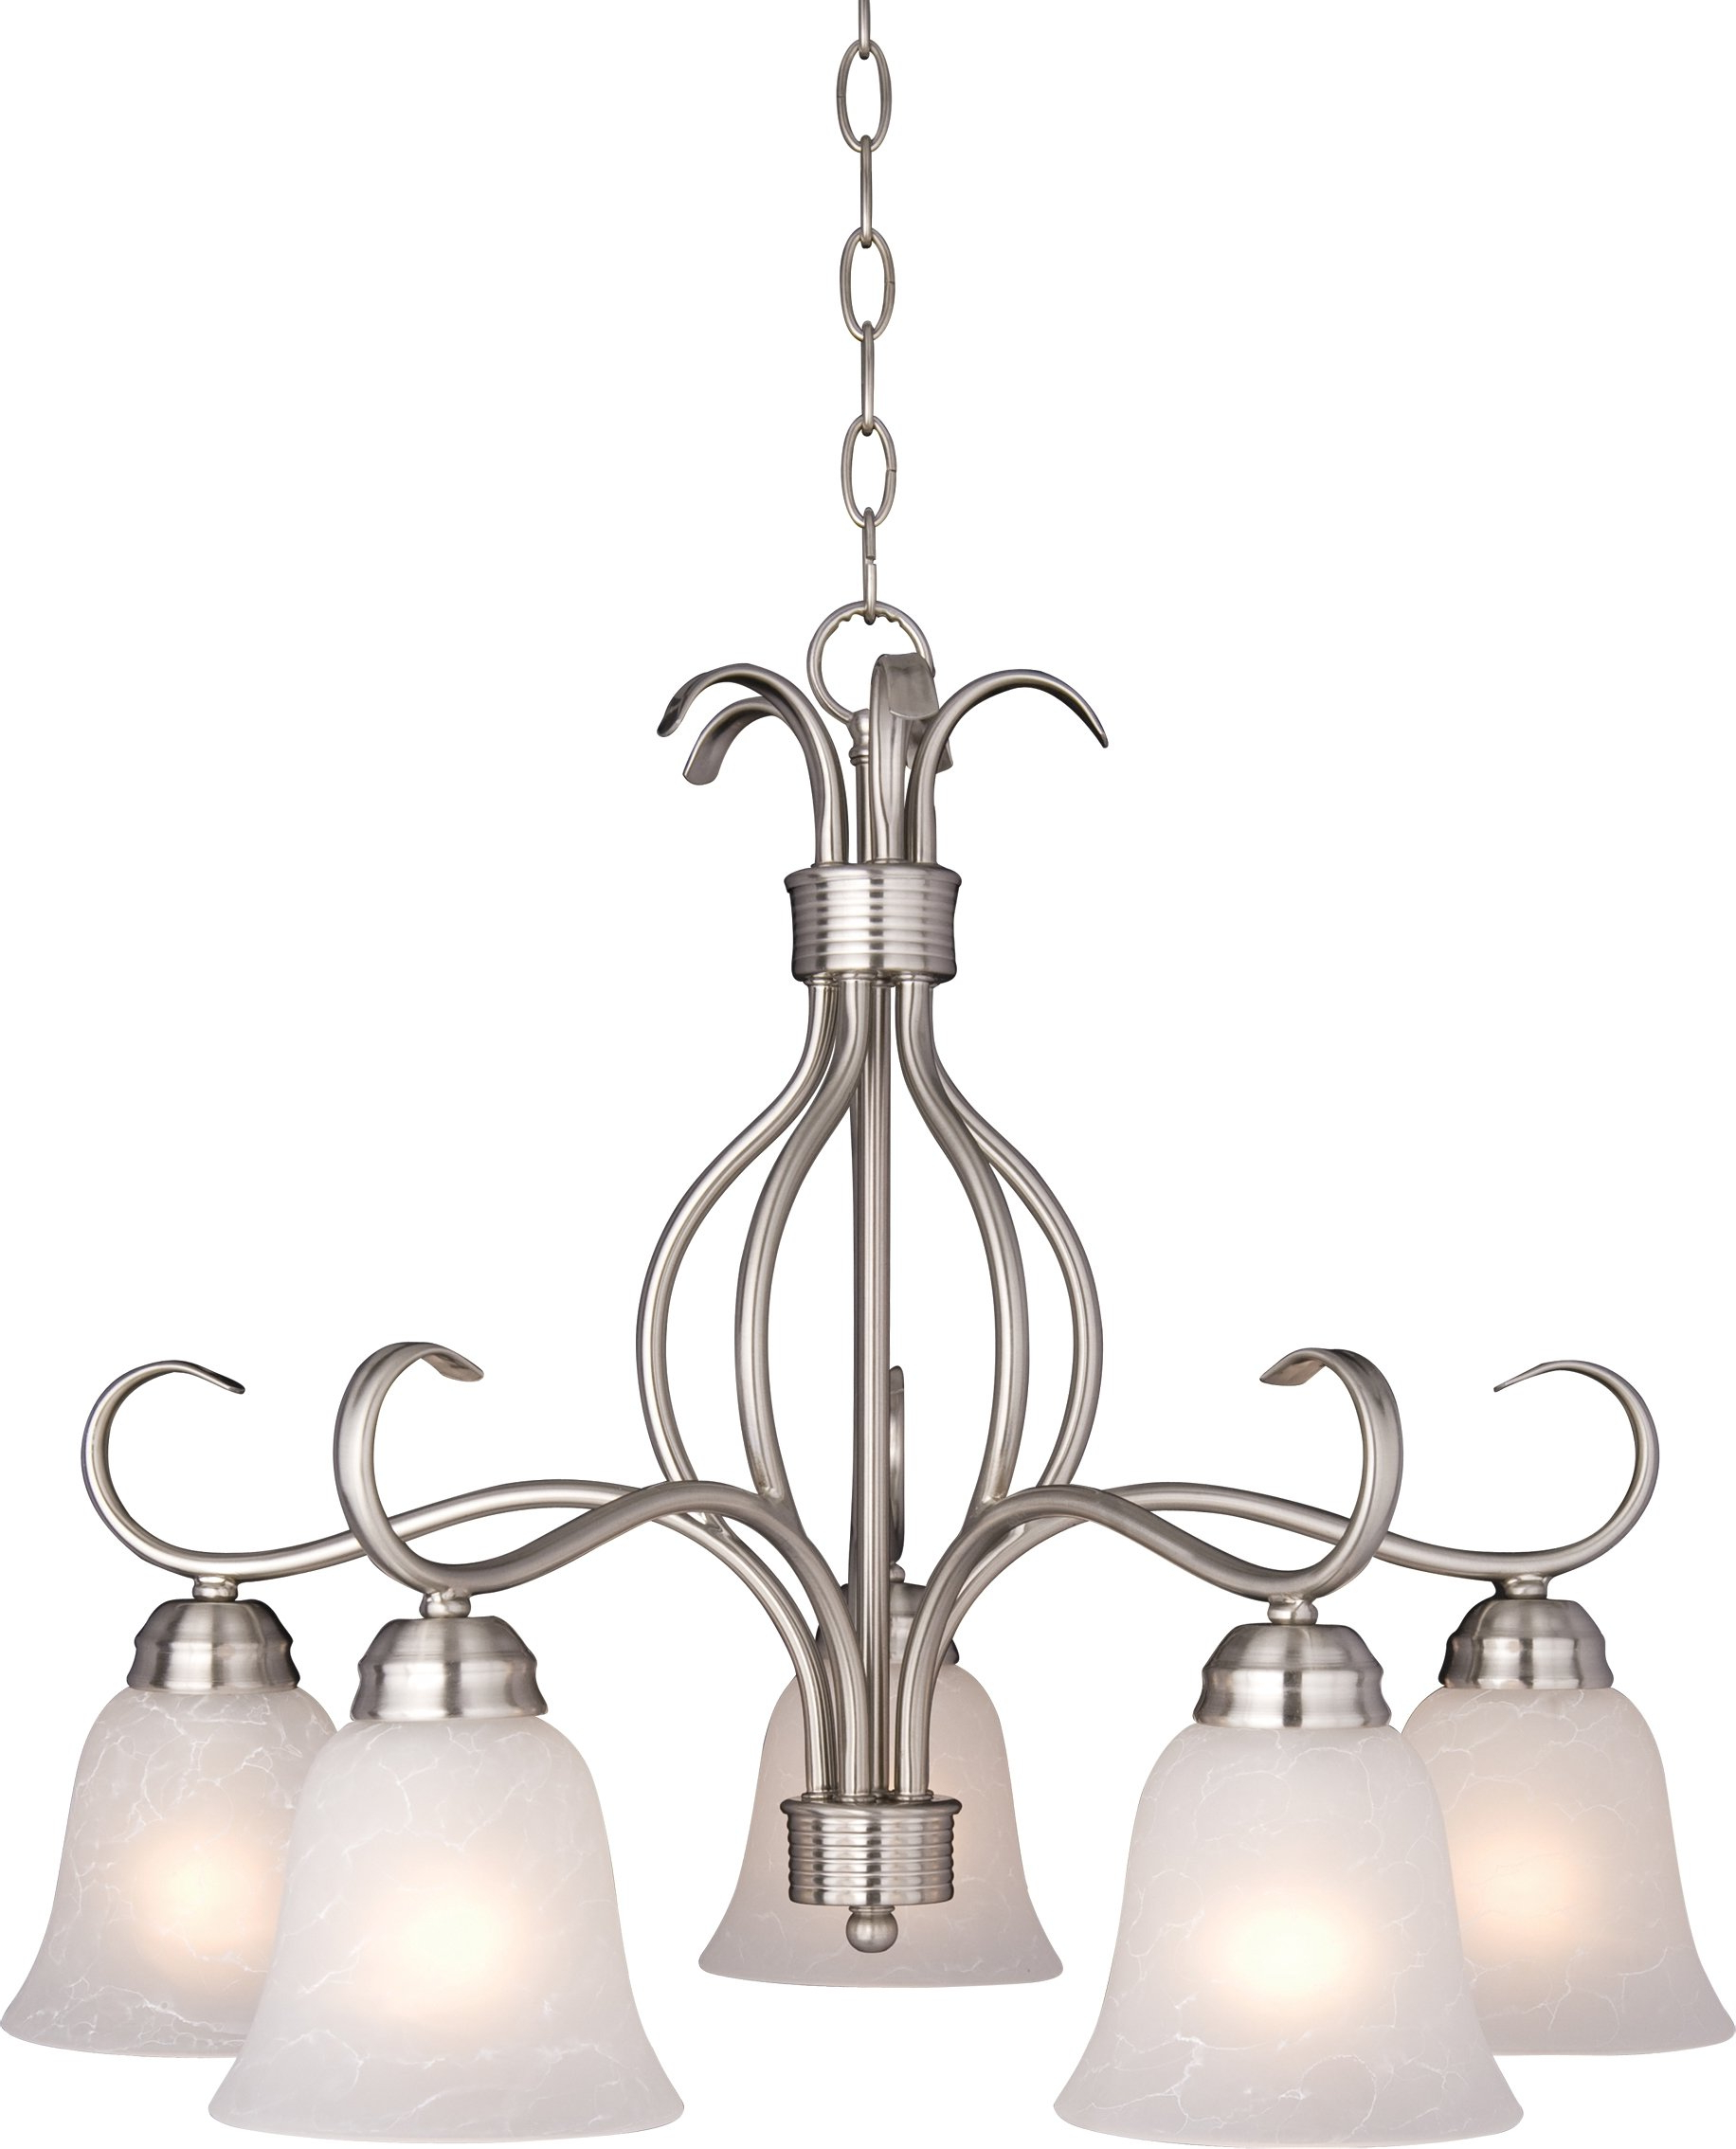 Most Recently Released Gaines 5 Light Shaded Chandeliers Throughout Wehr 5 Light Shaded Chandelier (View 20 of 25)